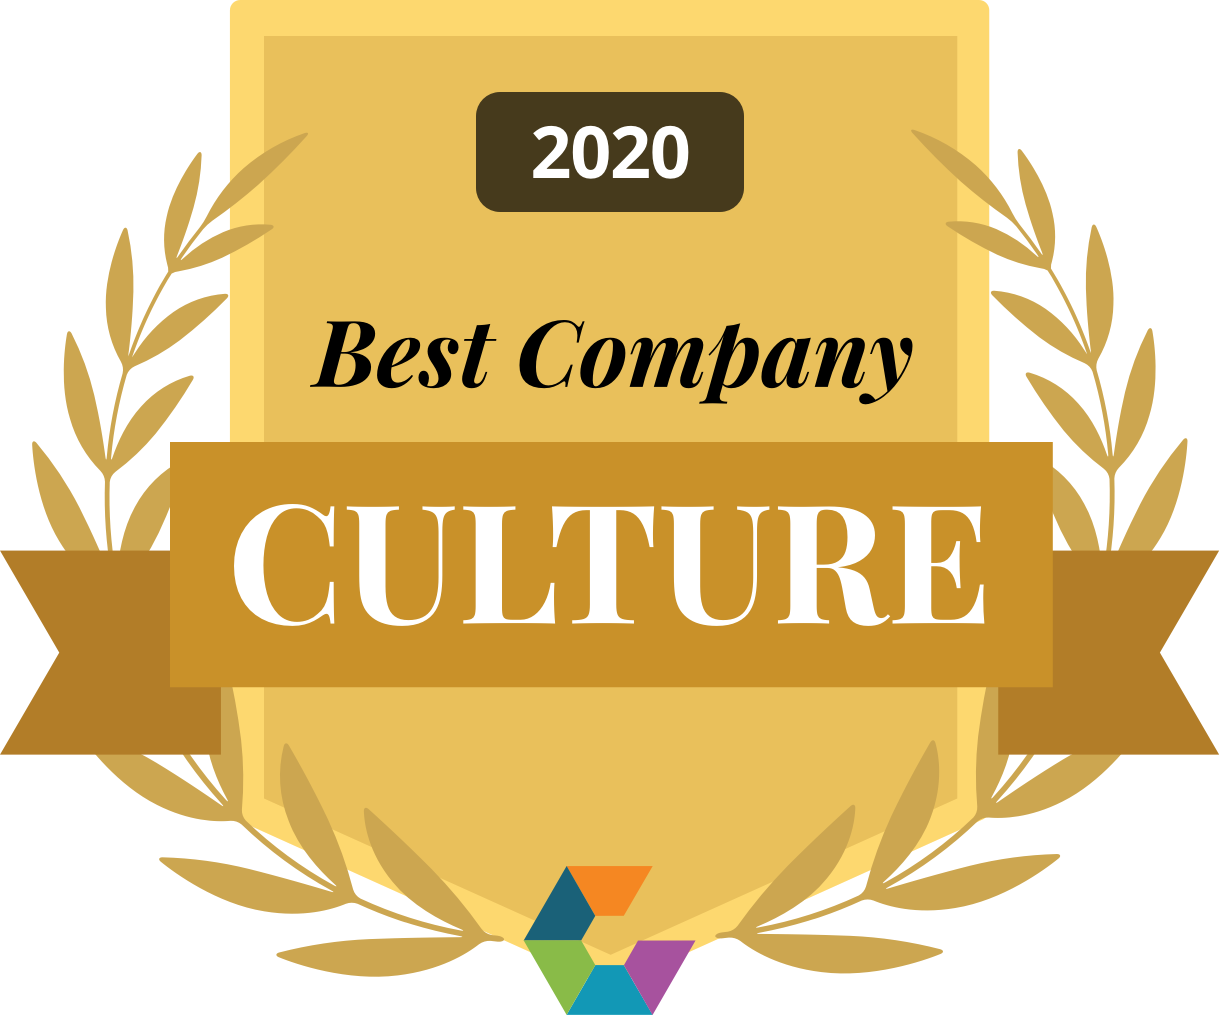 Best Company Culture Award